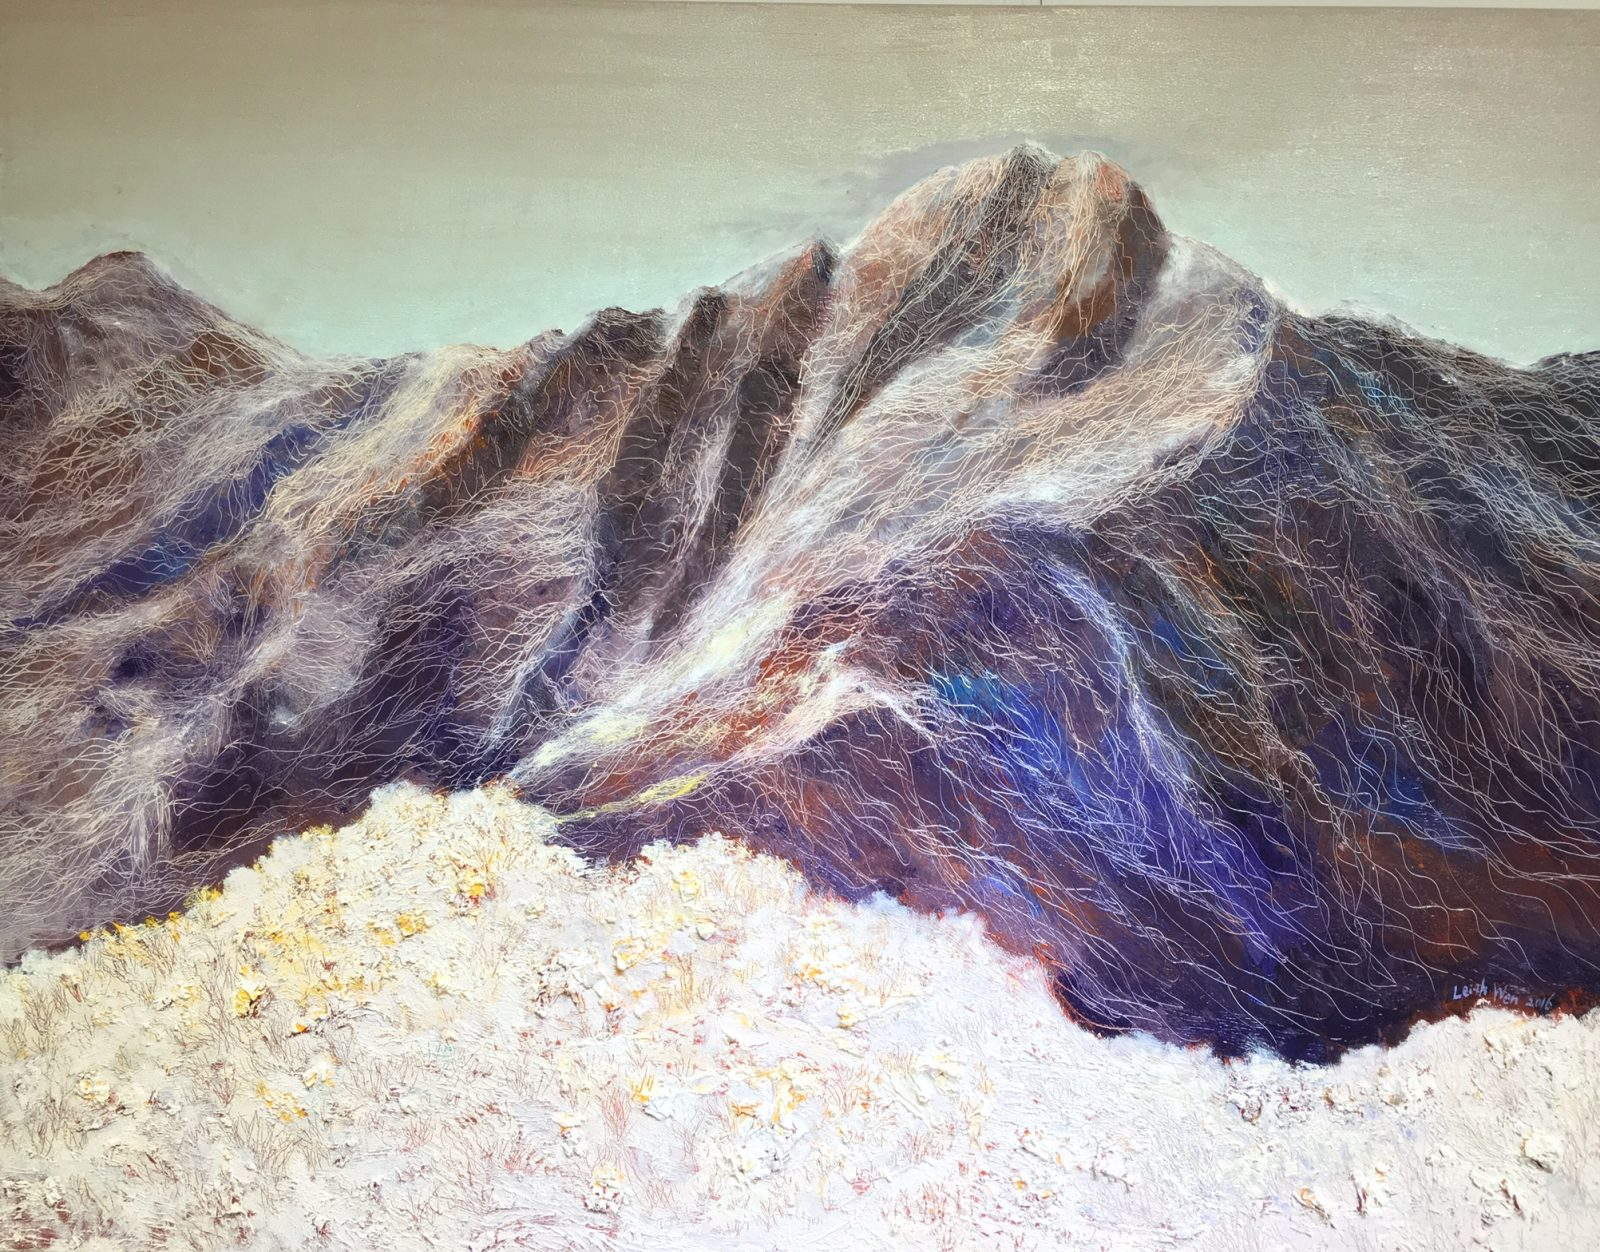 玉山 #12, Yu-Shang Mt. #12, 91 x 116.5 cm, oil on canvas, 2016